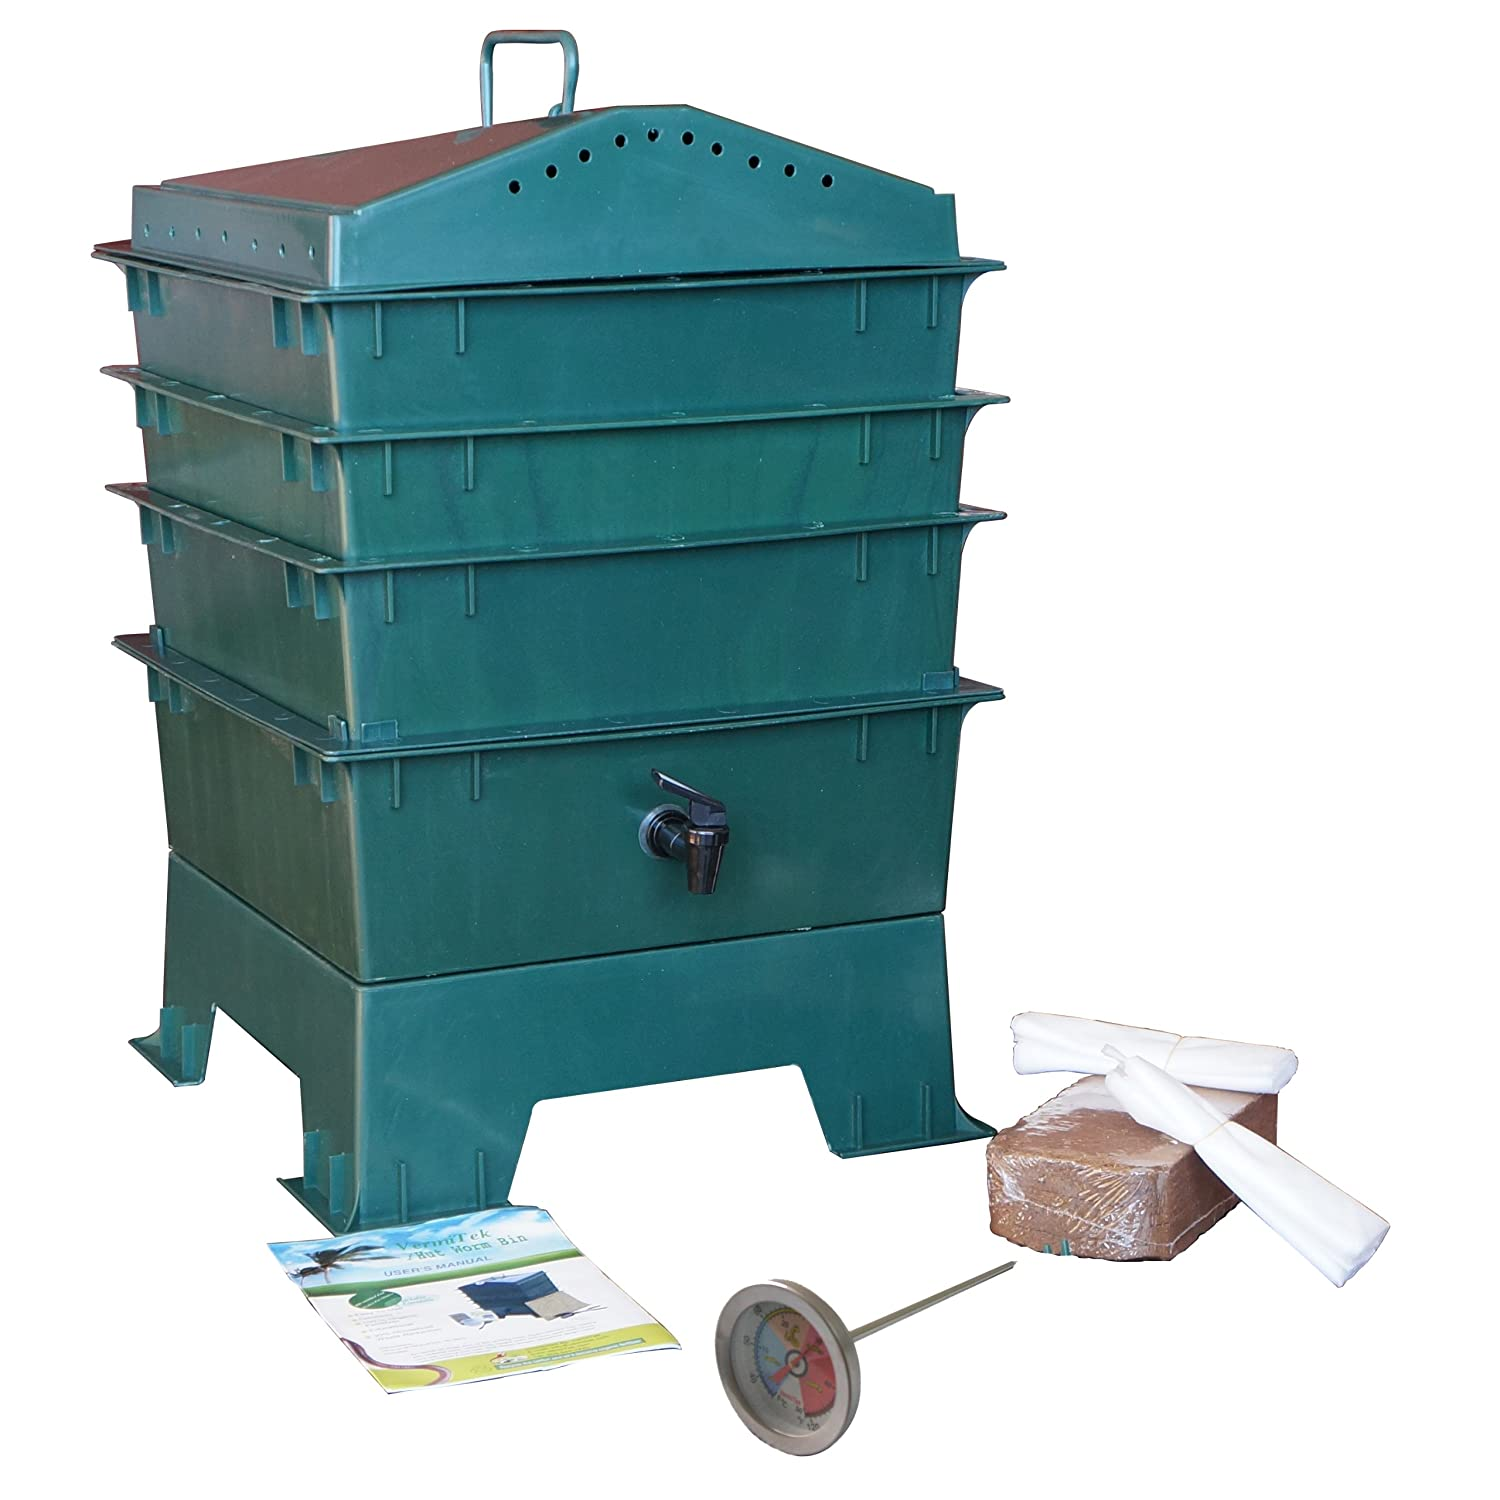 VermiHut 3-Tray Worm Compost Bin with Free Thermometer-Dark Green